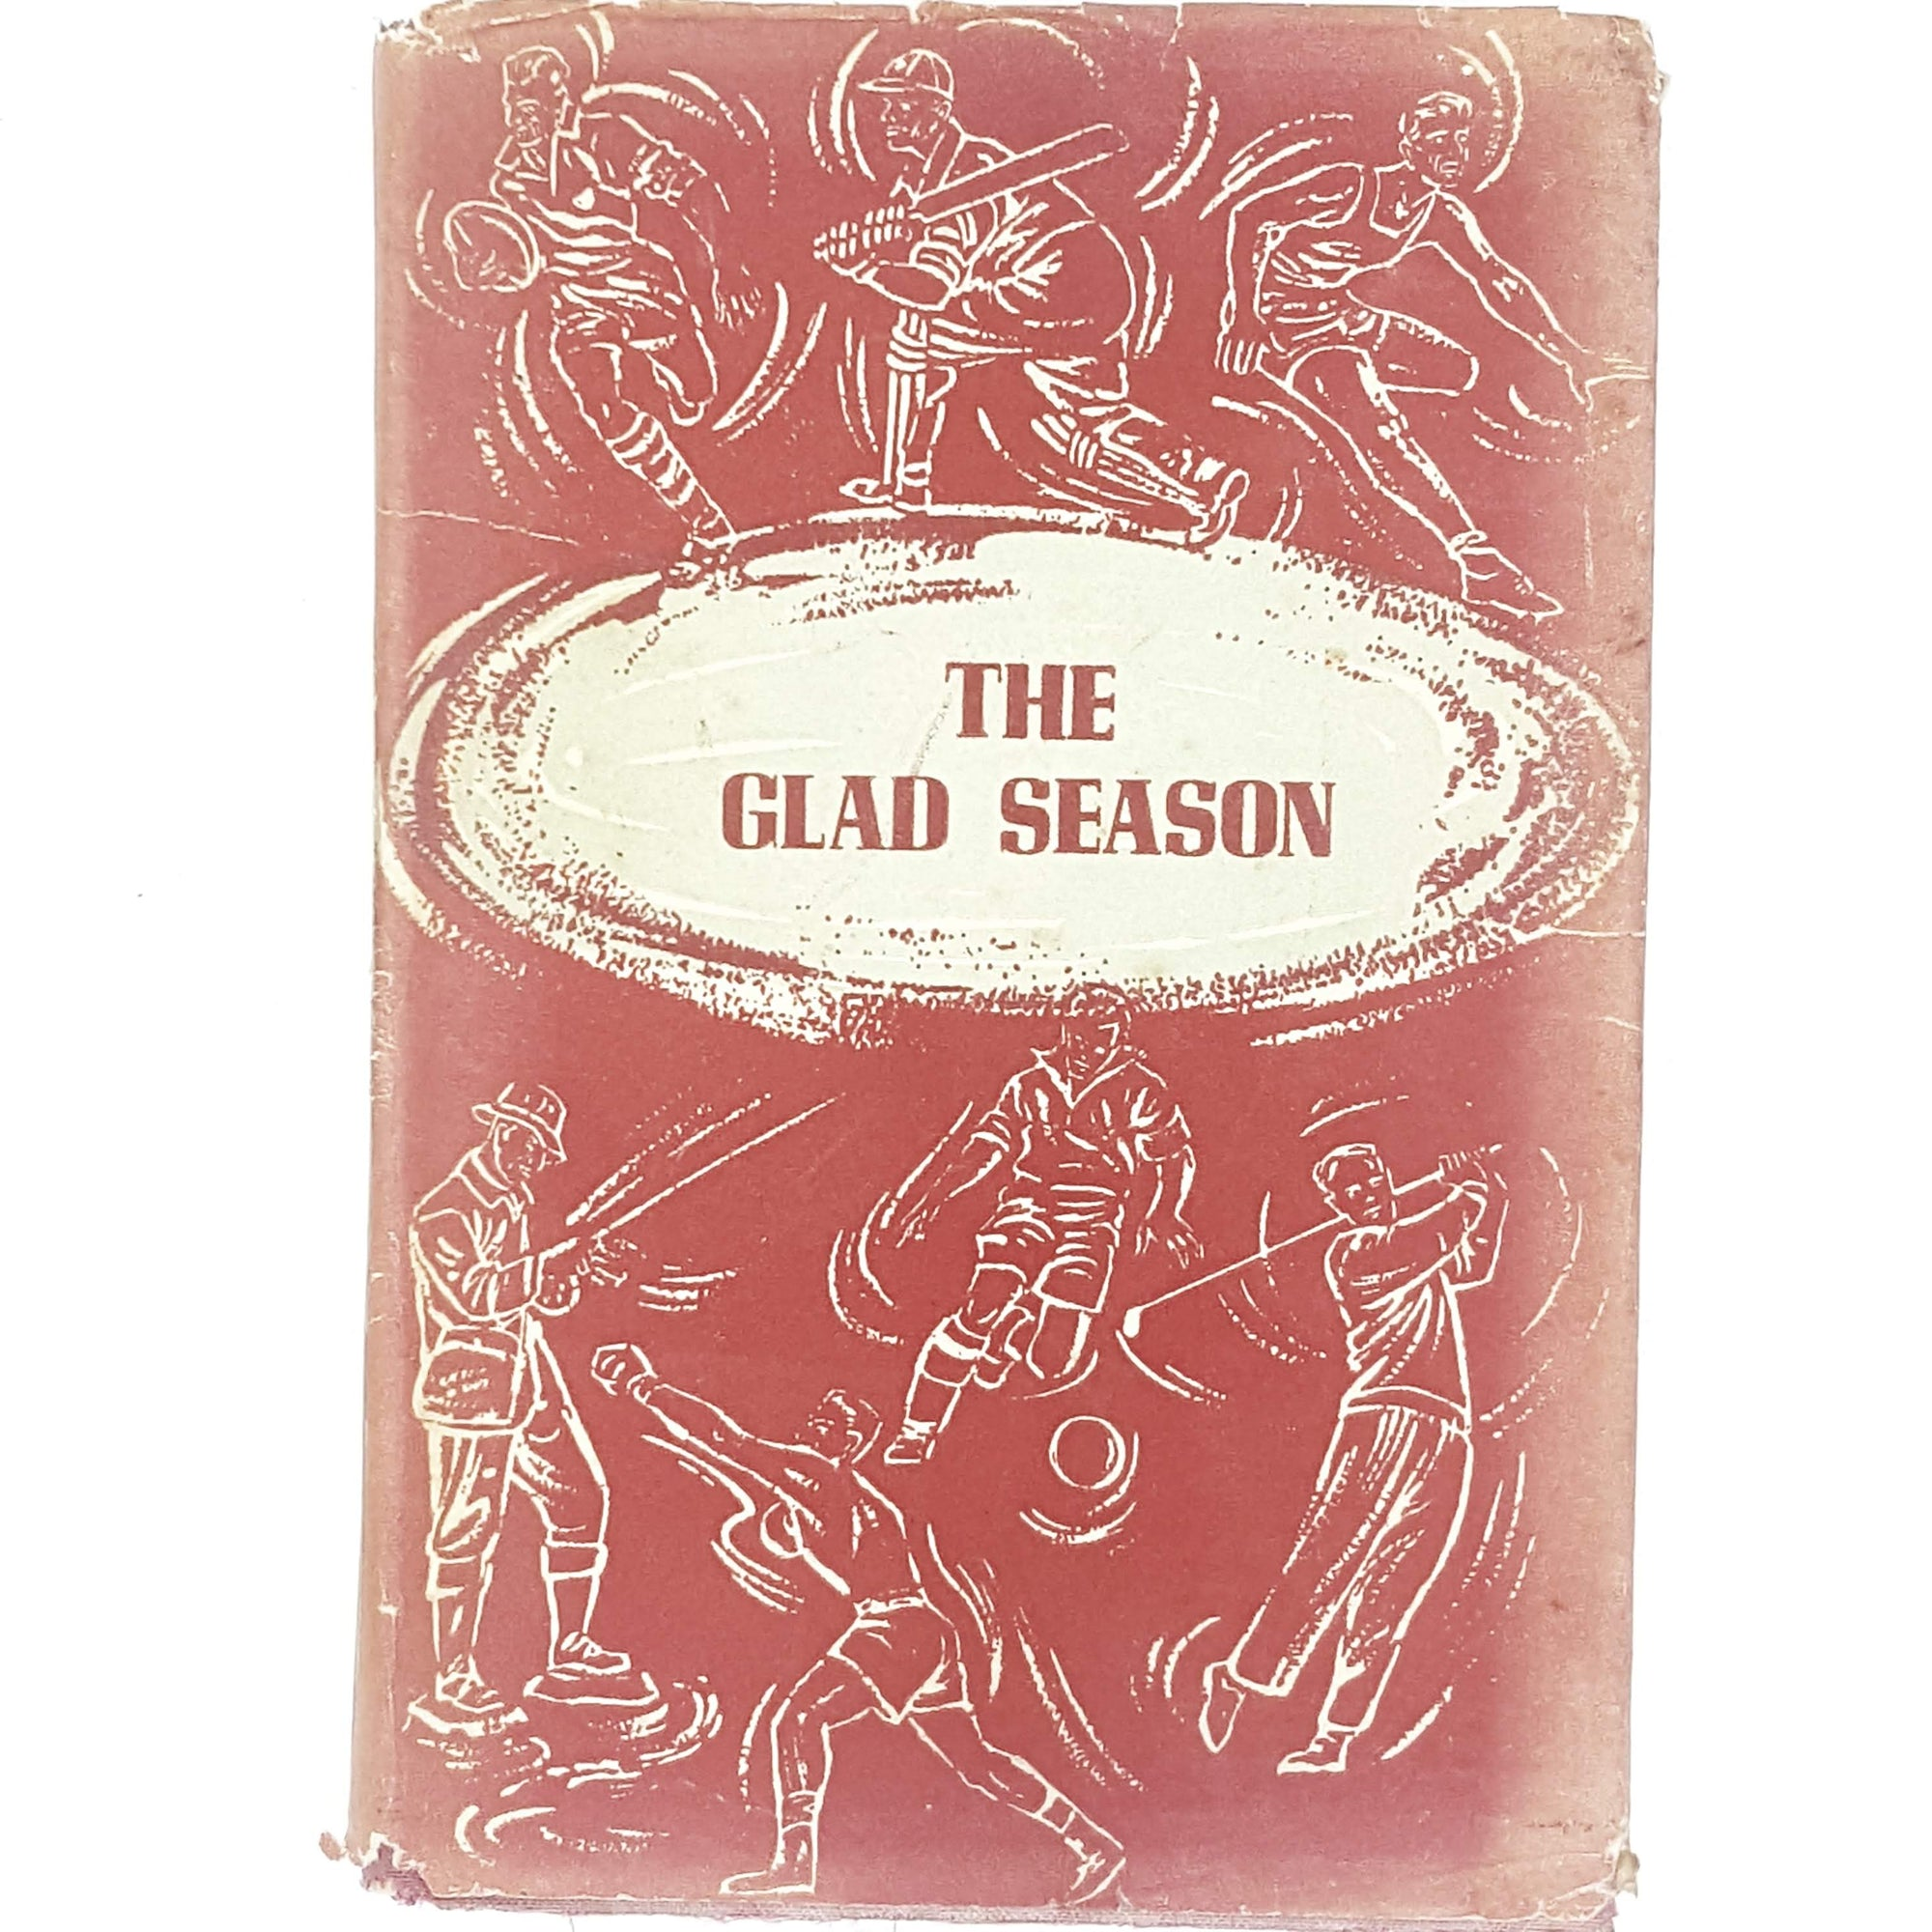 Illustrated The Glad Season 1956